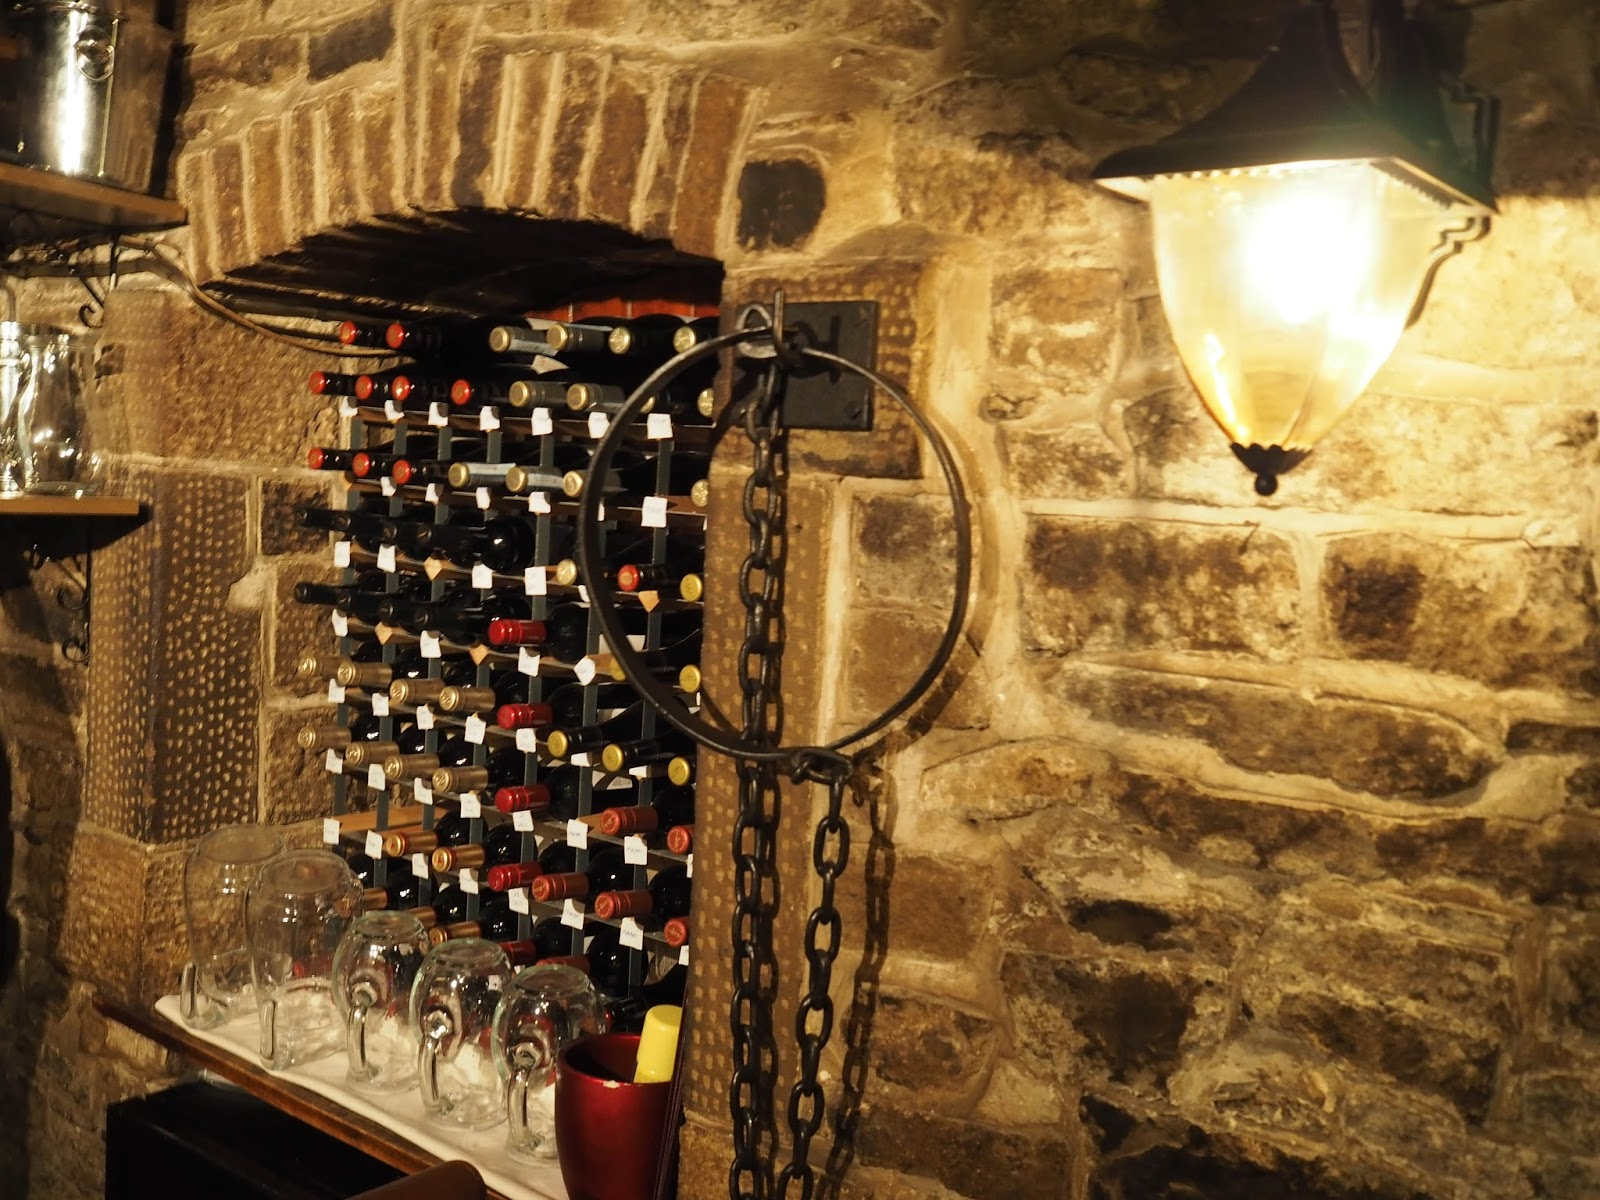 Le Caveau, excellent French restaurant in Skipton, North Yorkshire that used to be a prison